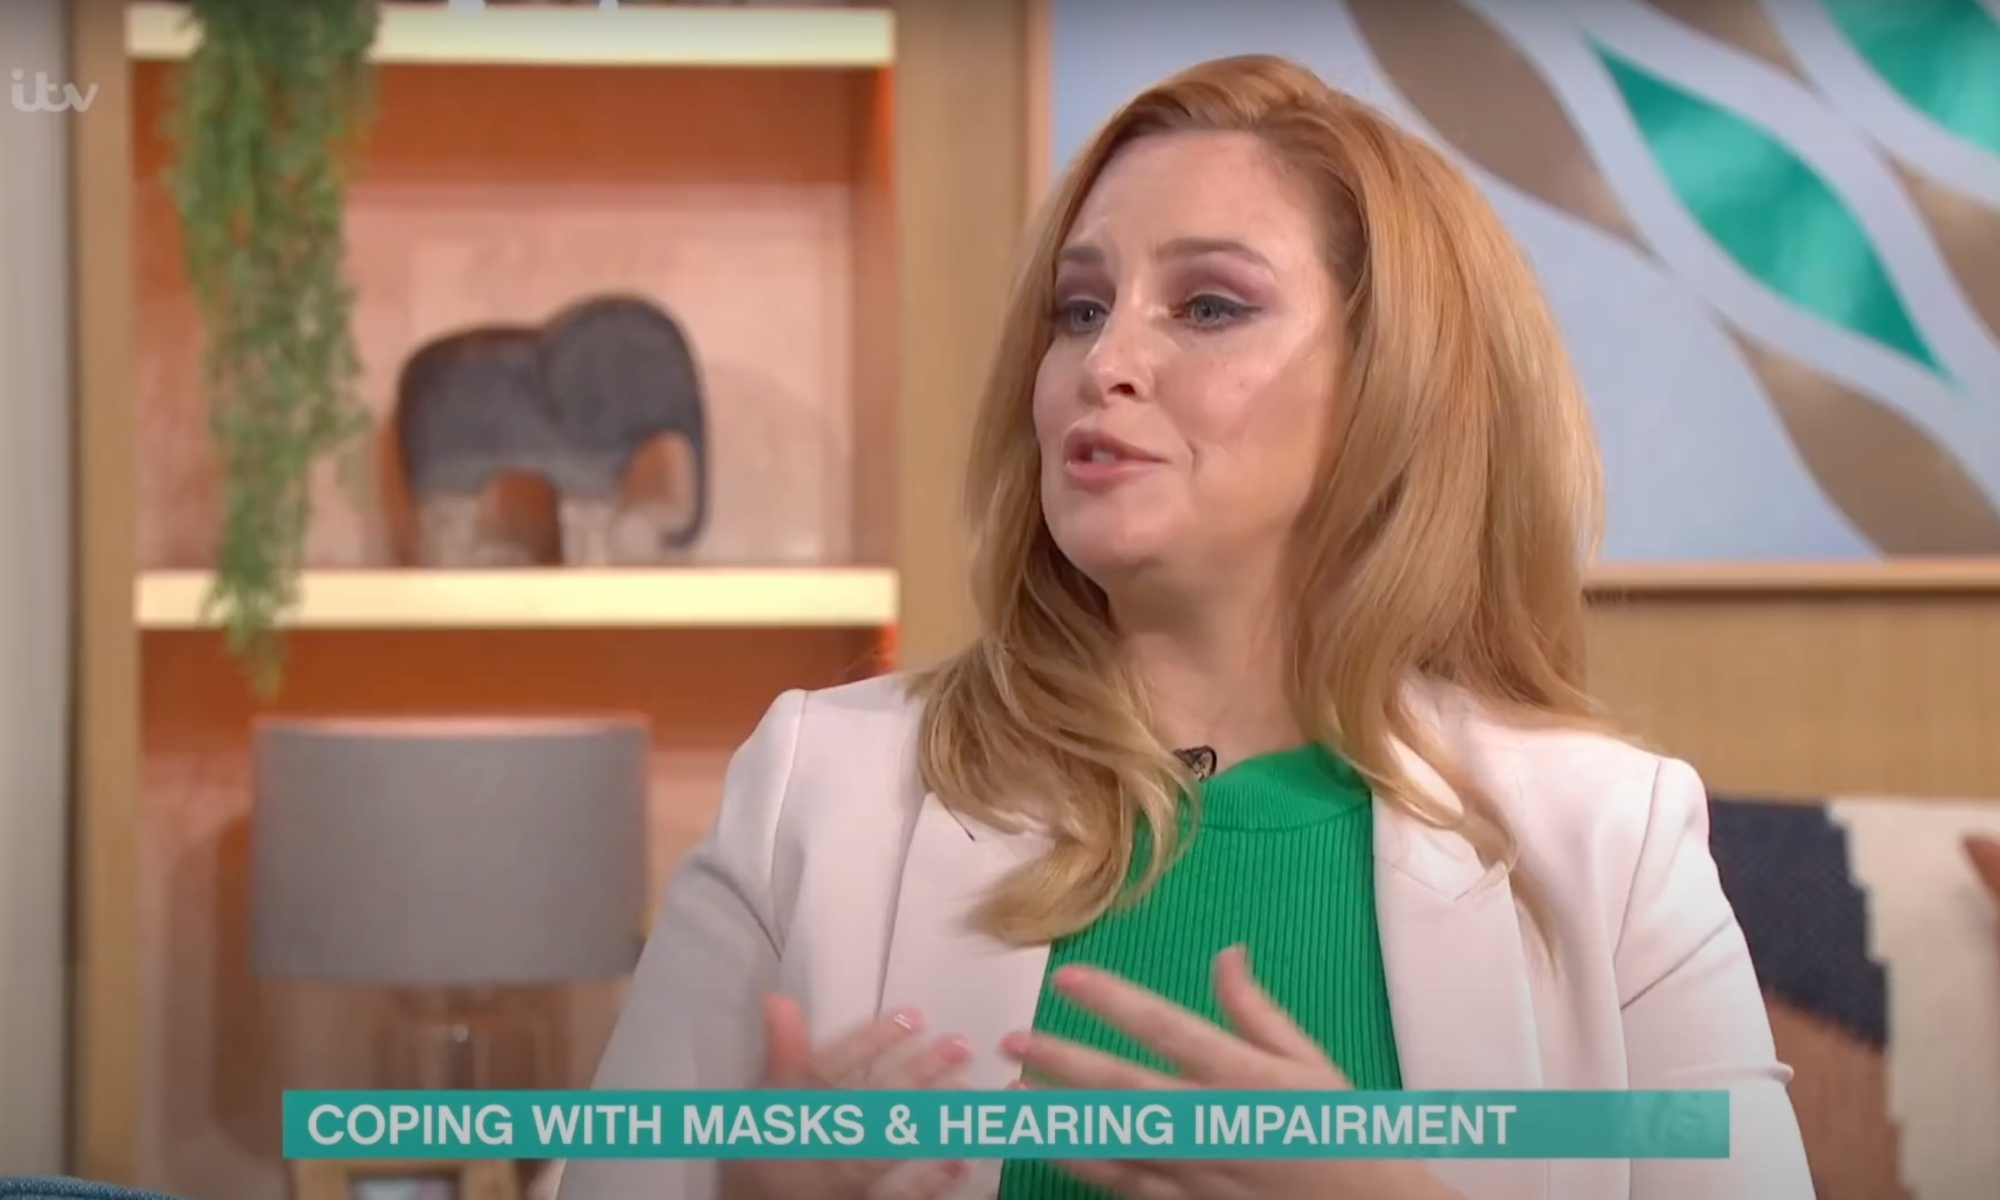 Josie Gibson on This Morning. Strapline text reads 'Coping with masks & hearing impairment'.